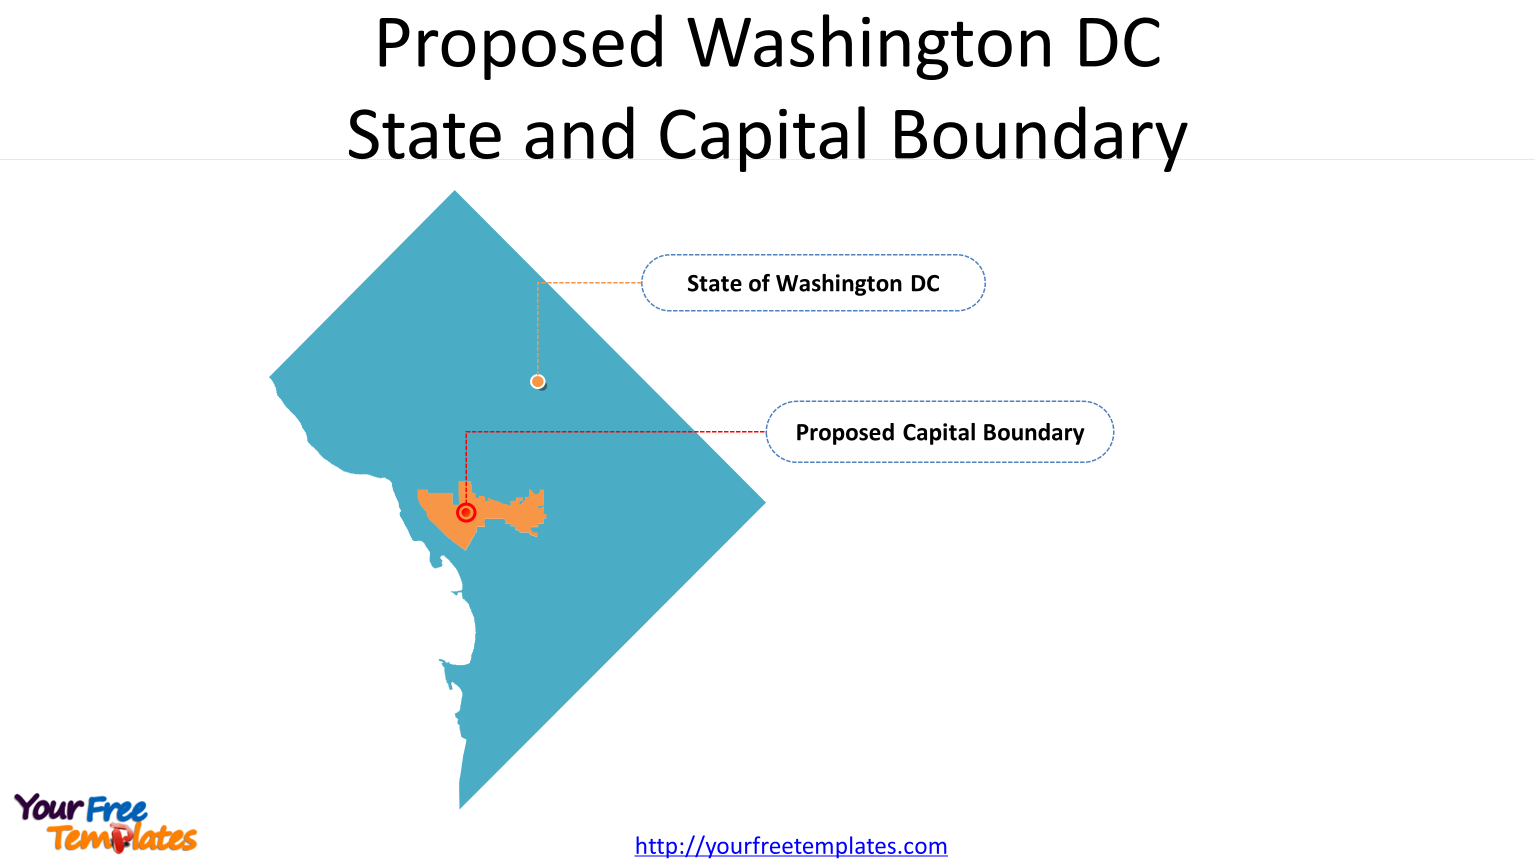 Proposed Washington DC State and Capital Boundary